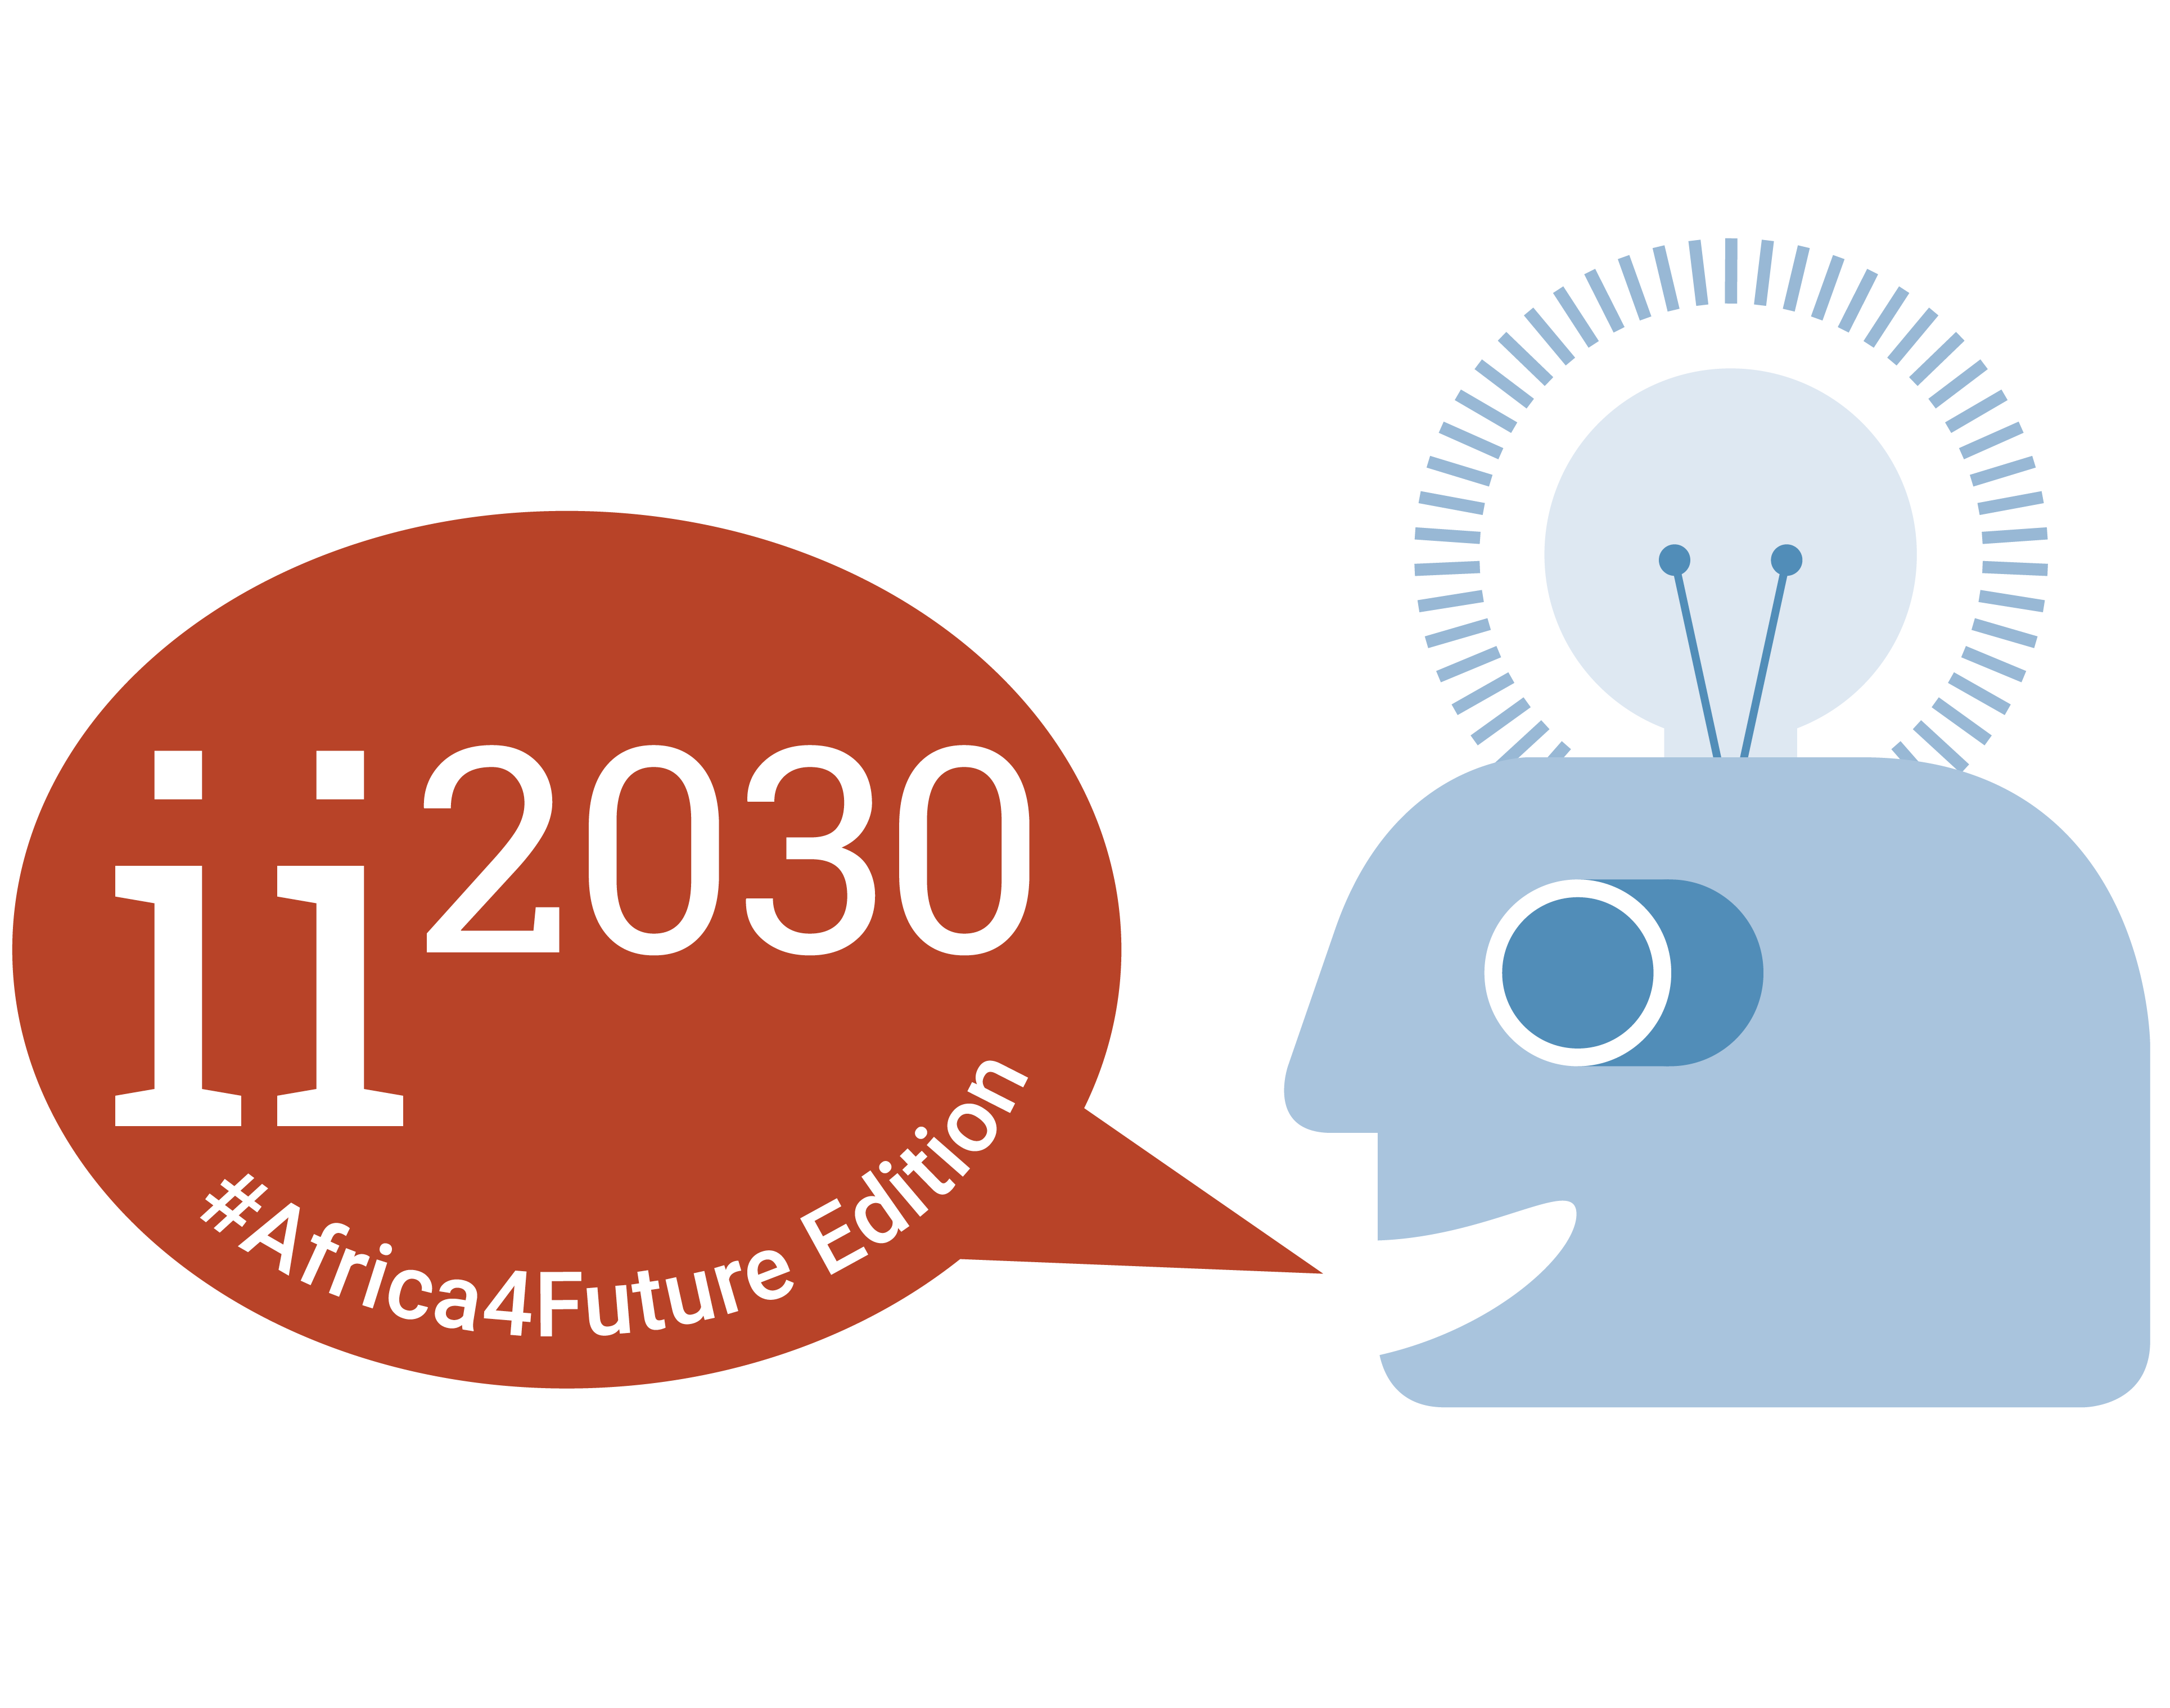 #Africa4Future edition